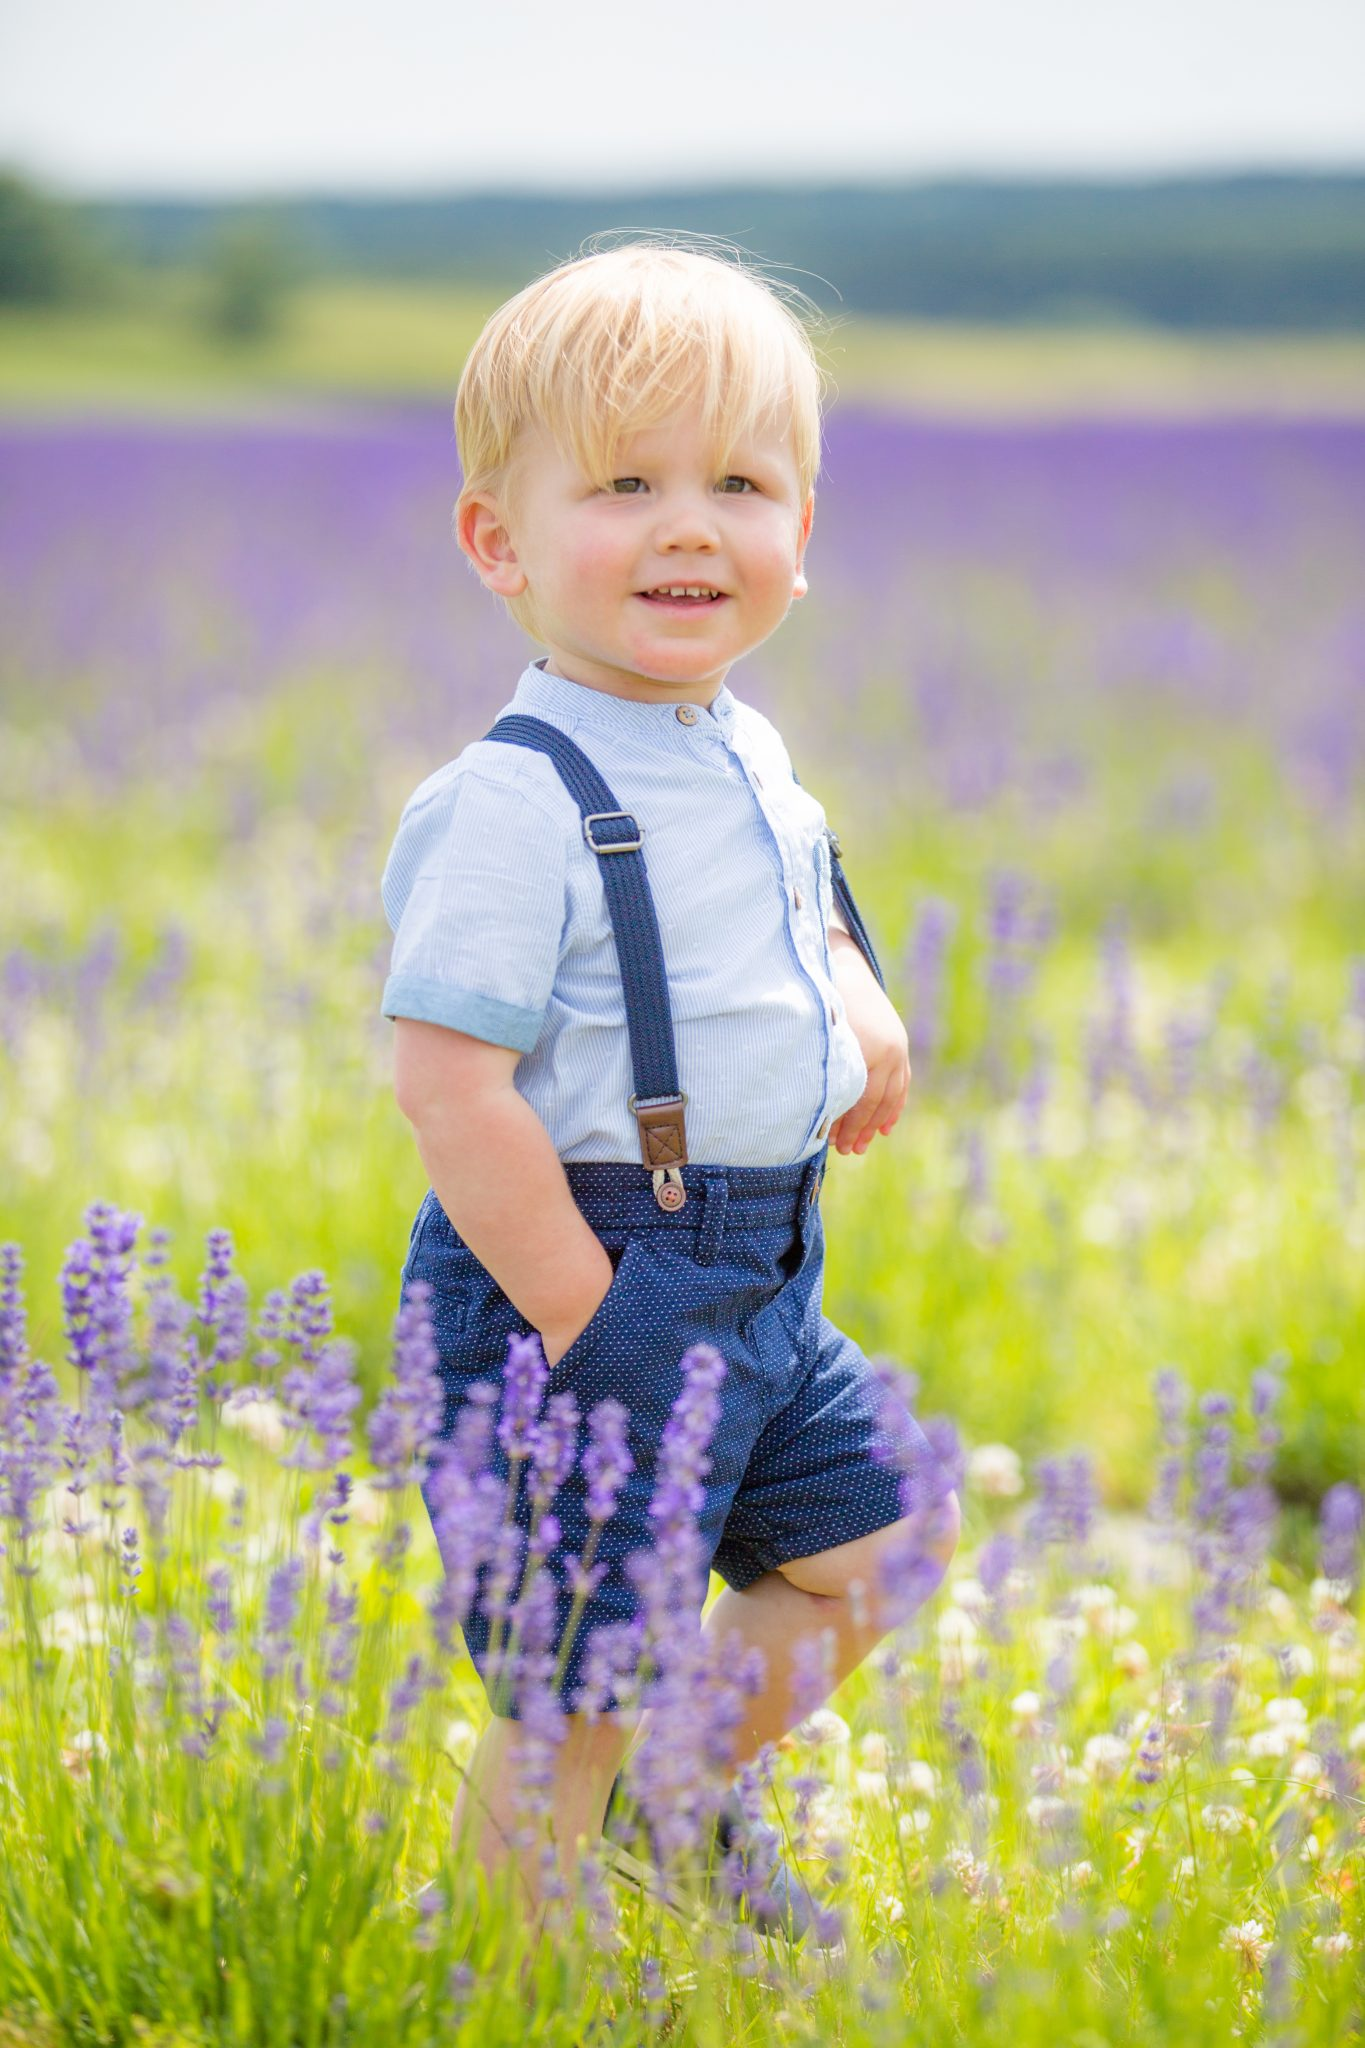 The Lavender Fields Family Shoot day.